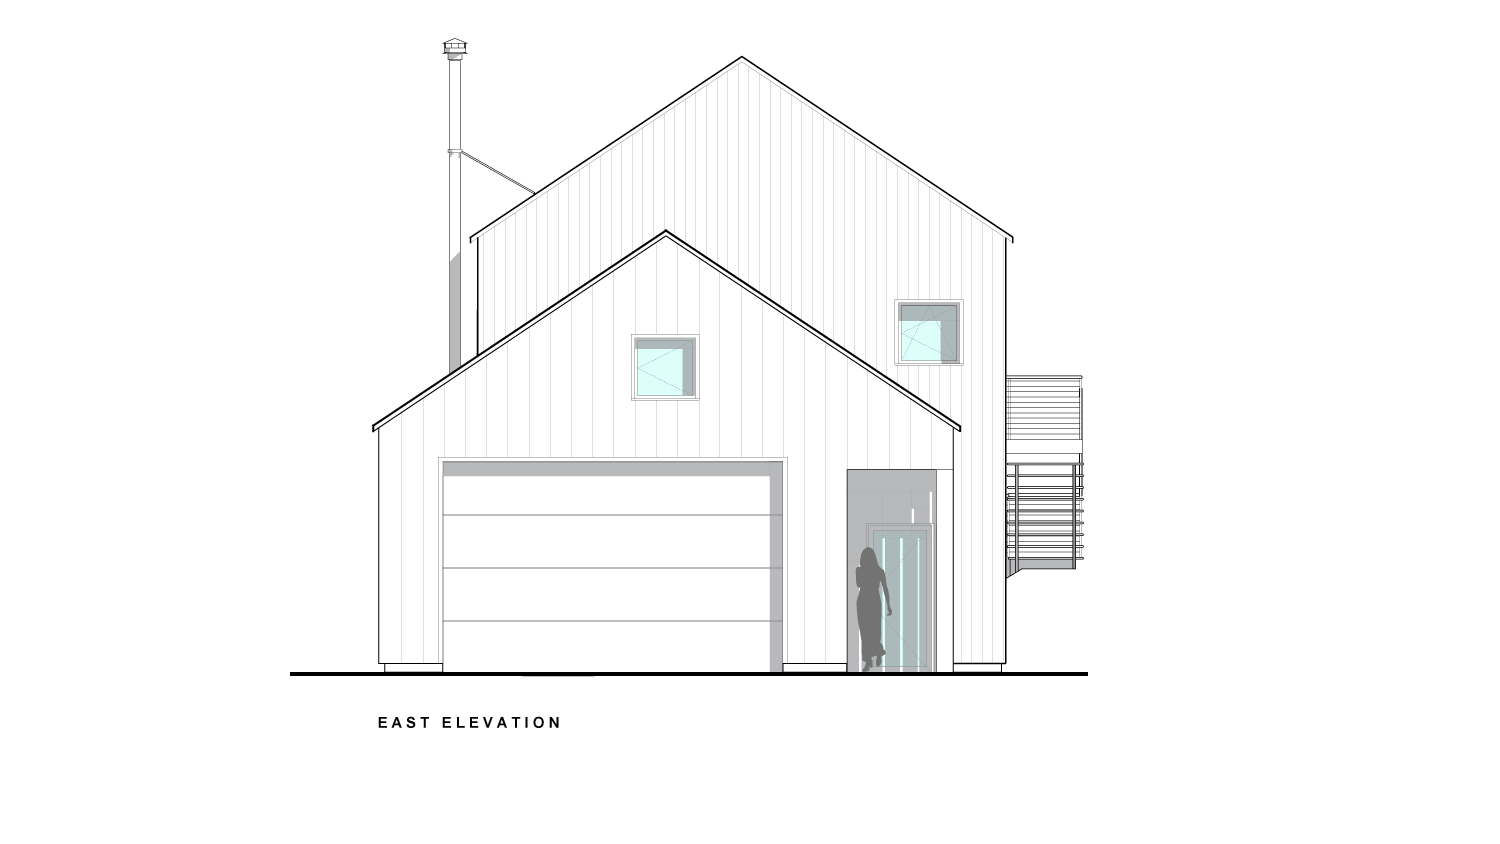 Reed East Elevations